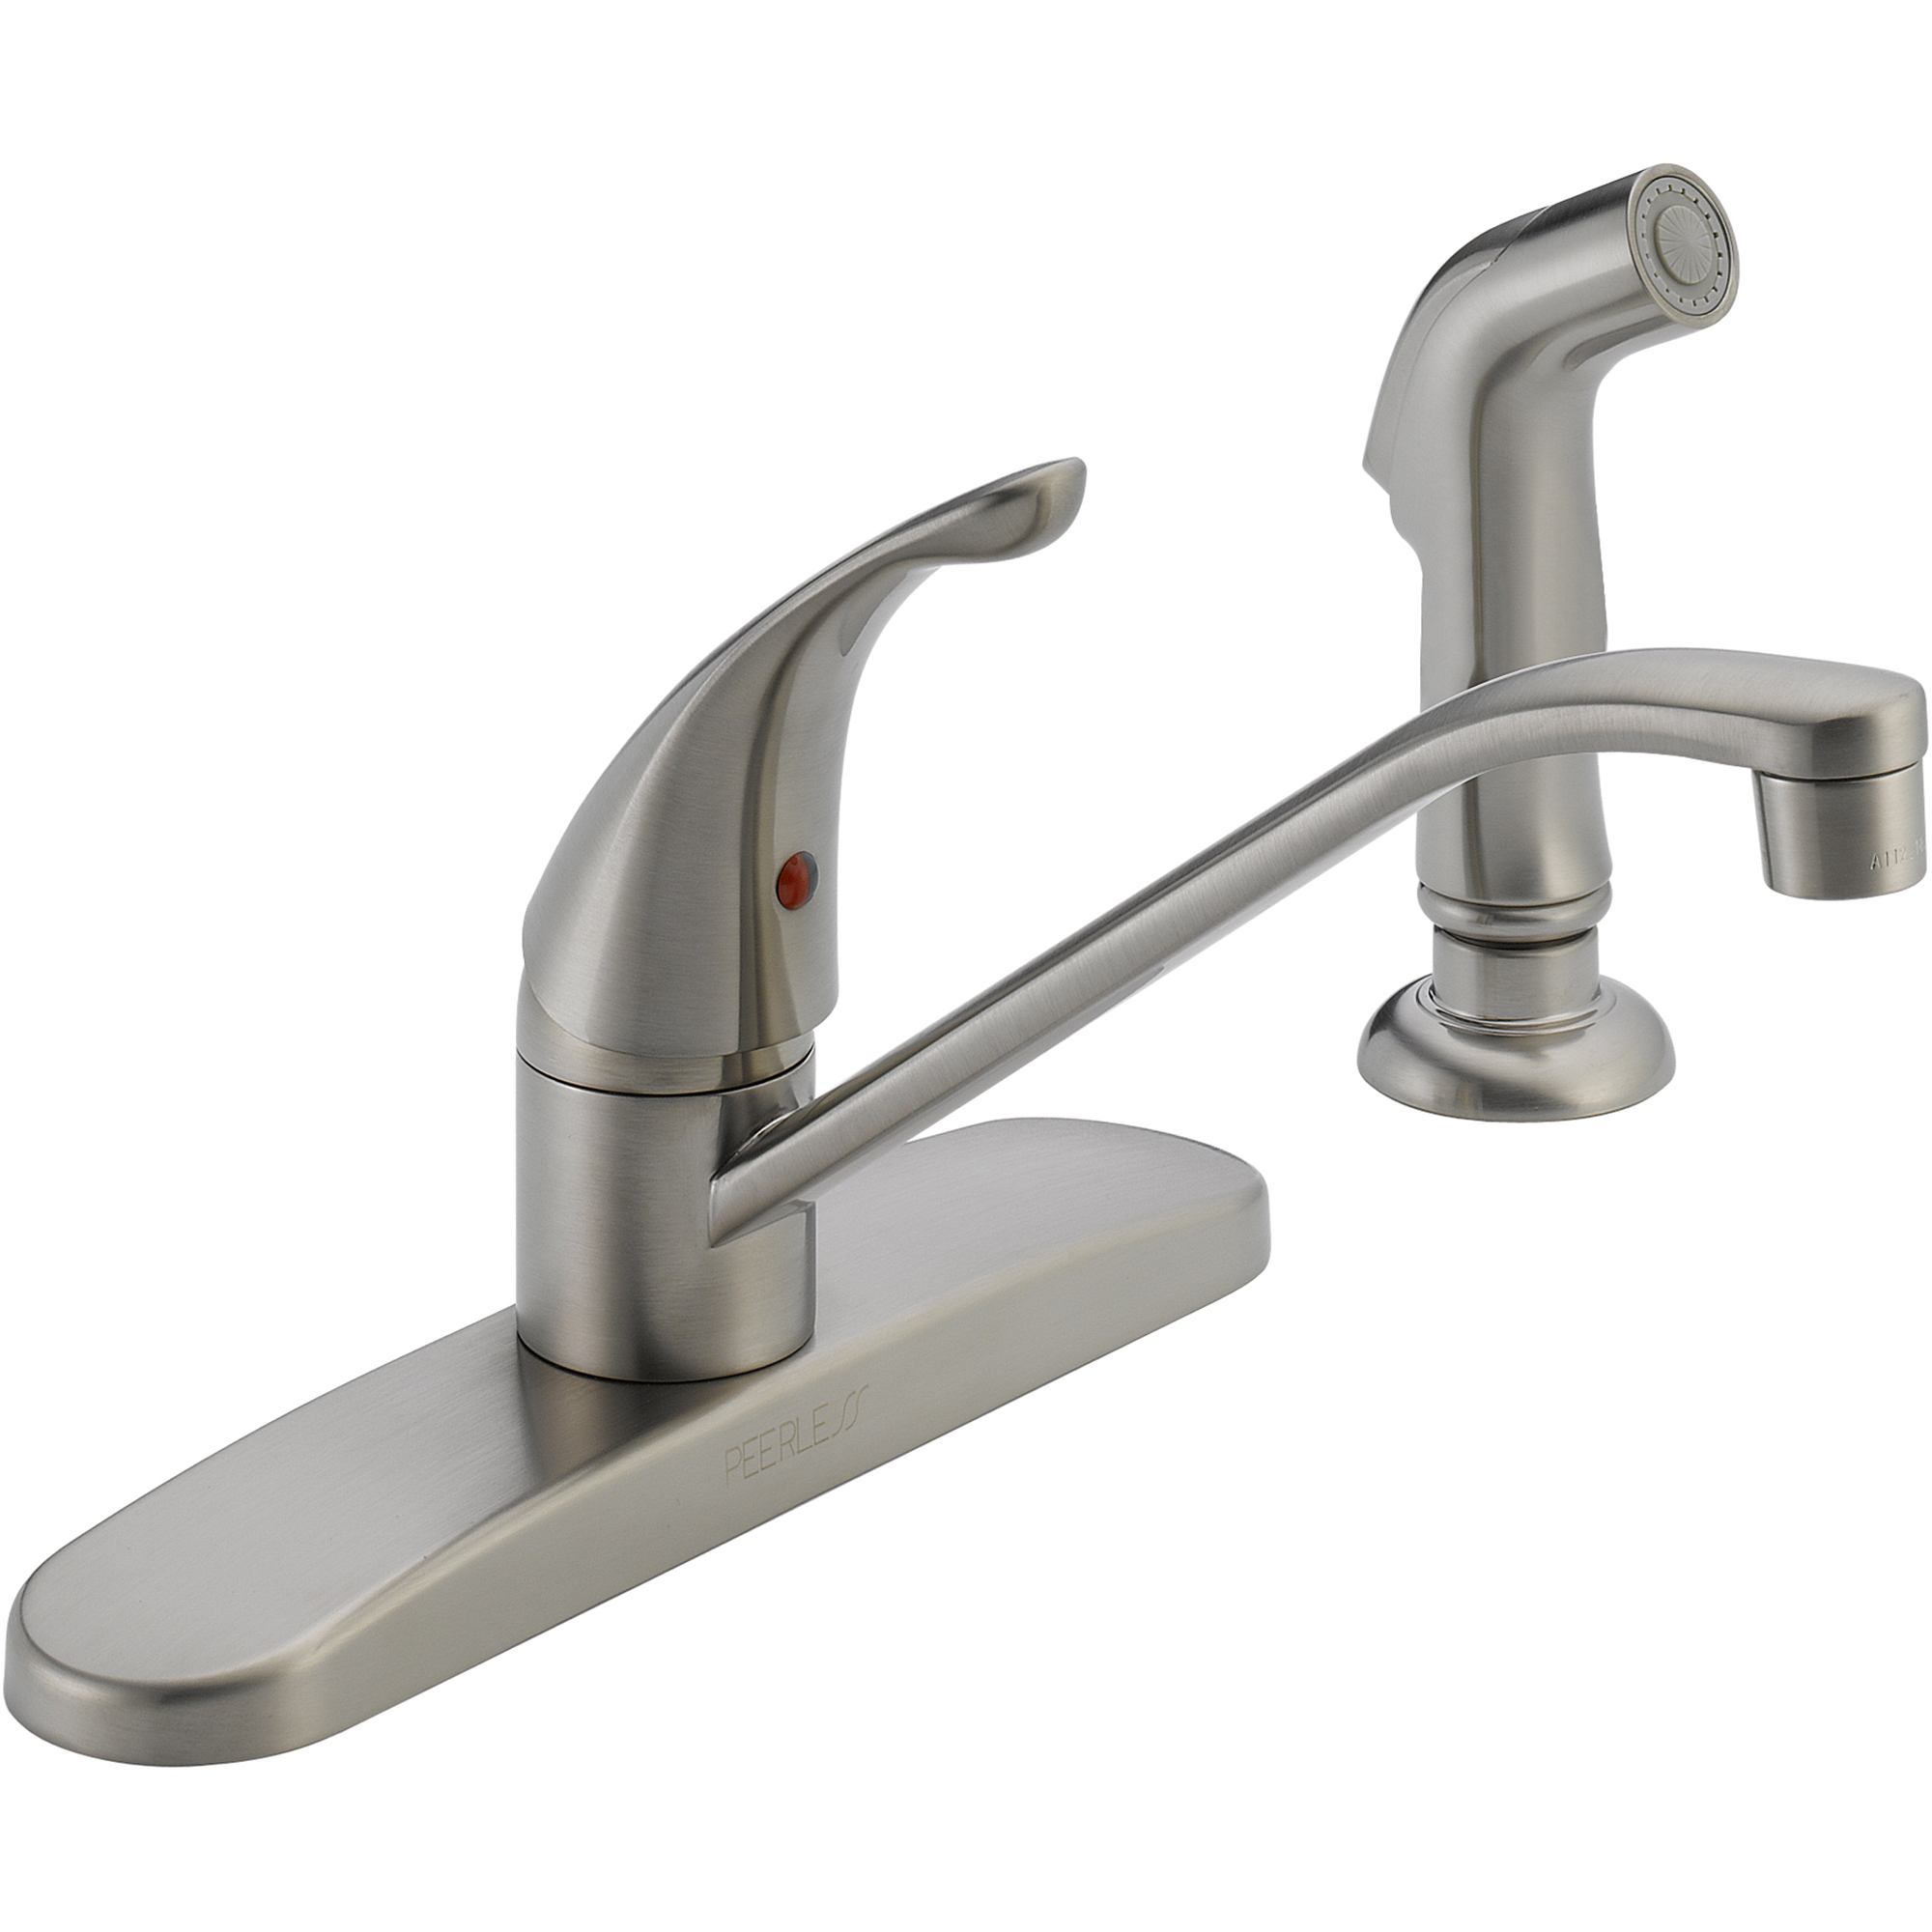 Peerless Single Handle Side Spray Kitchen Faucet